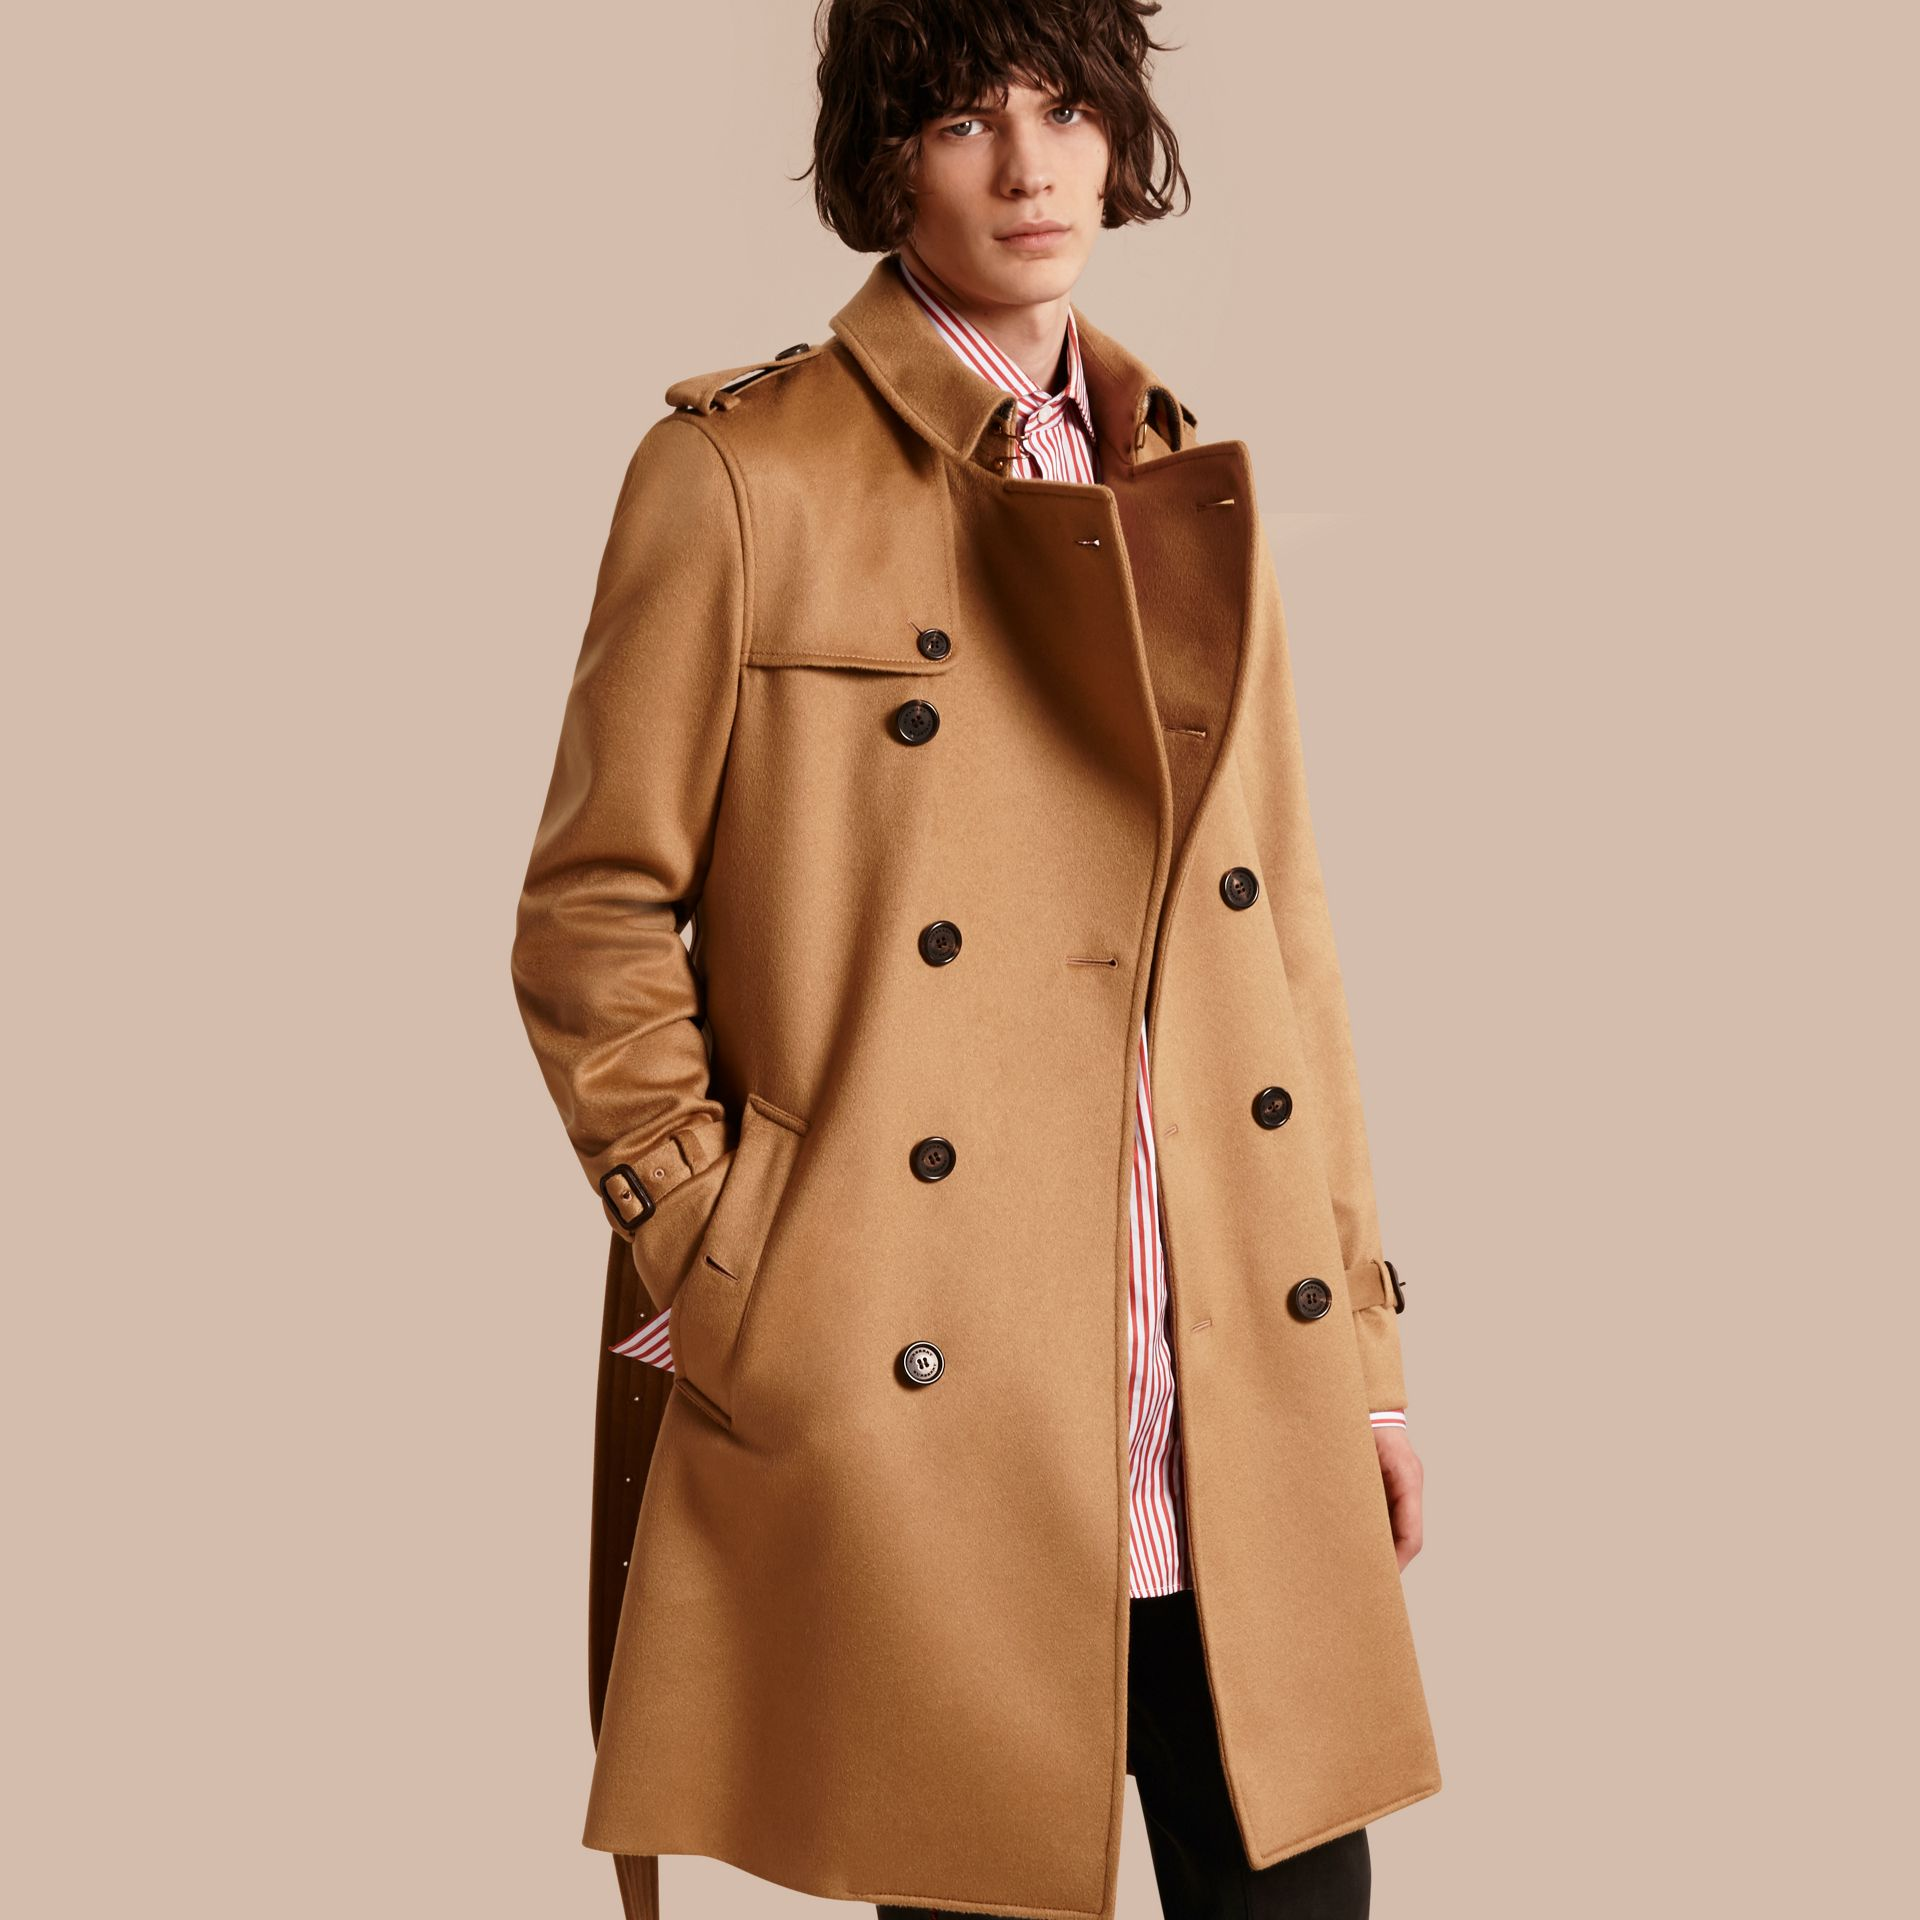 Cashmere Trench Coat in Dark Camel - Men | Burberry - gallery image 1